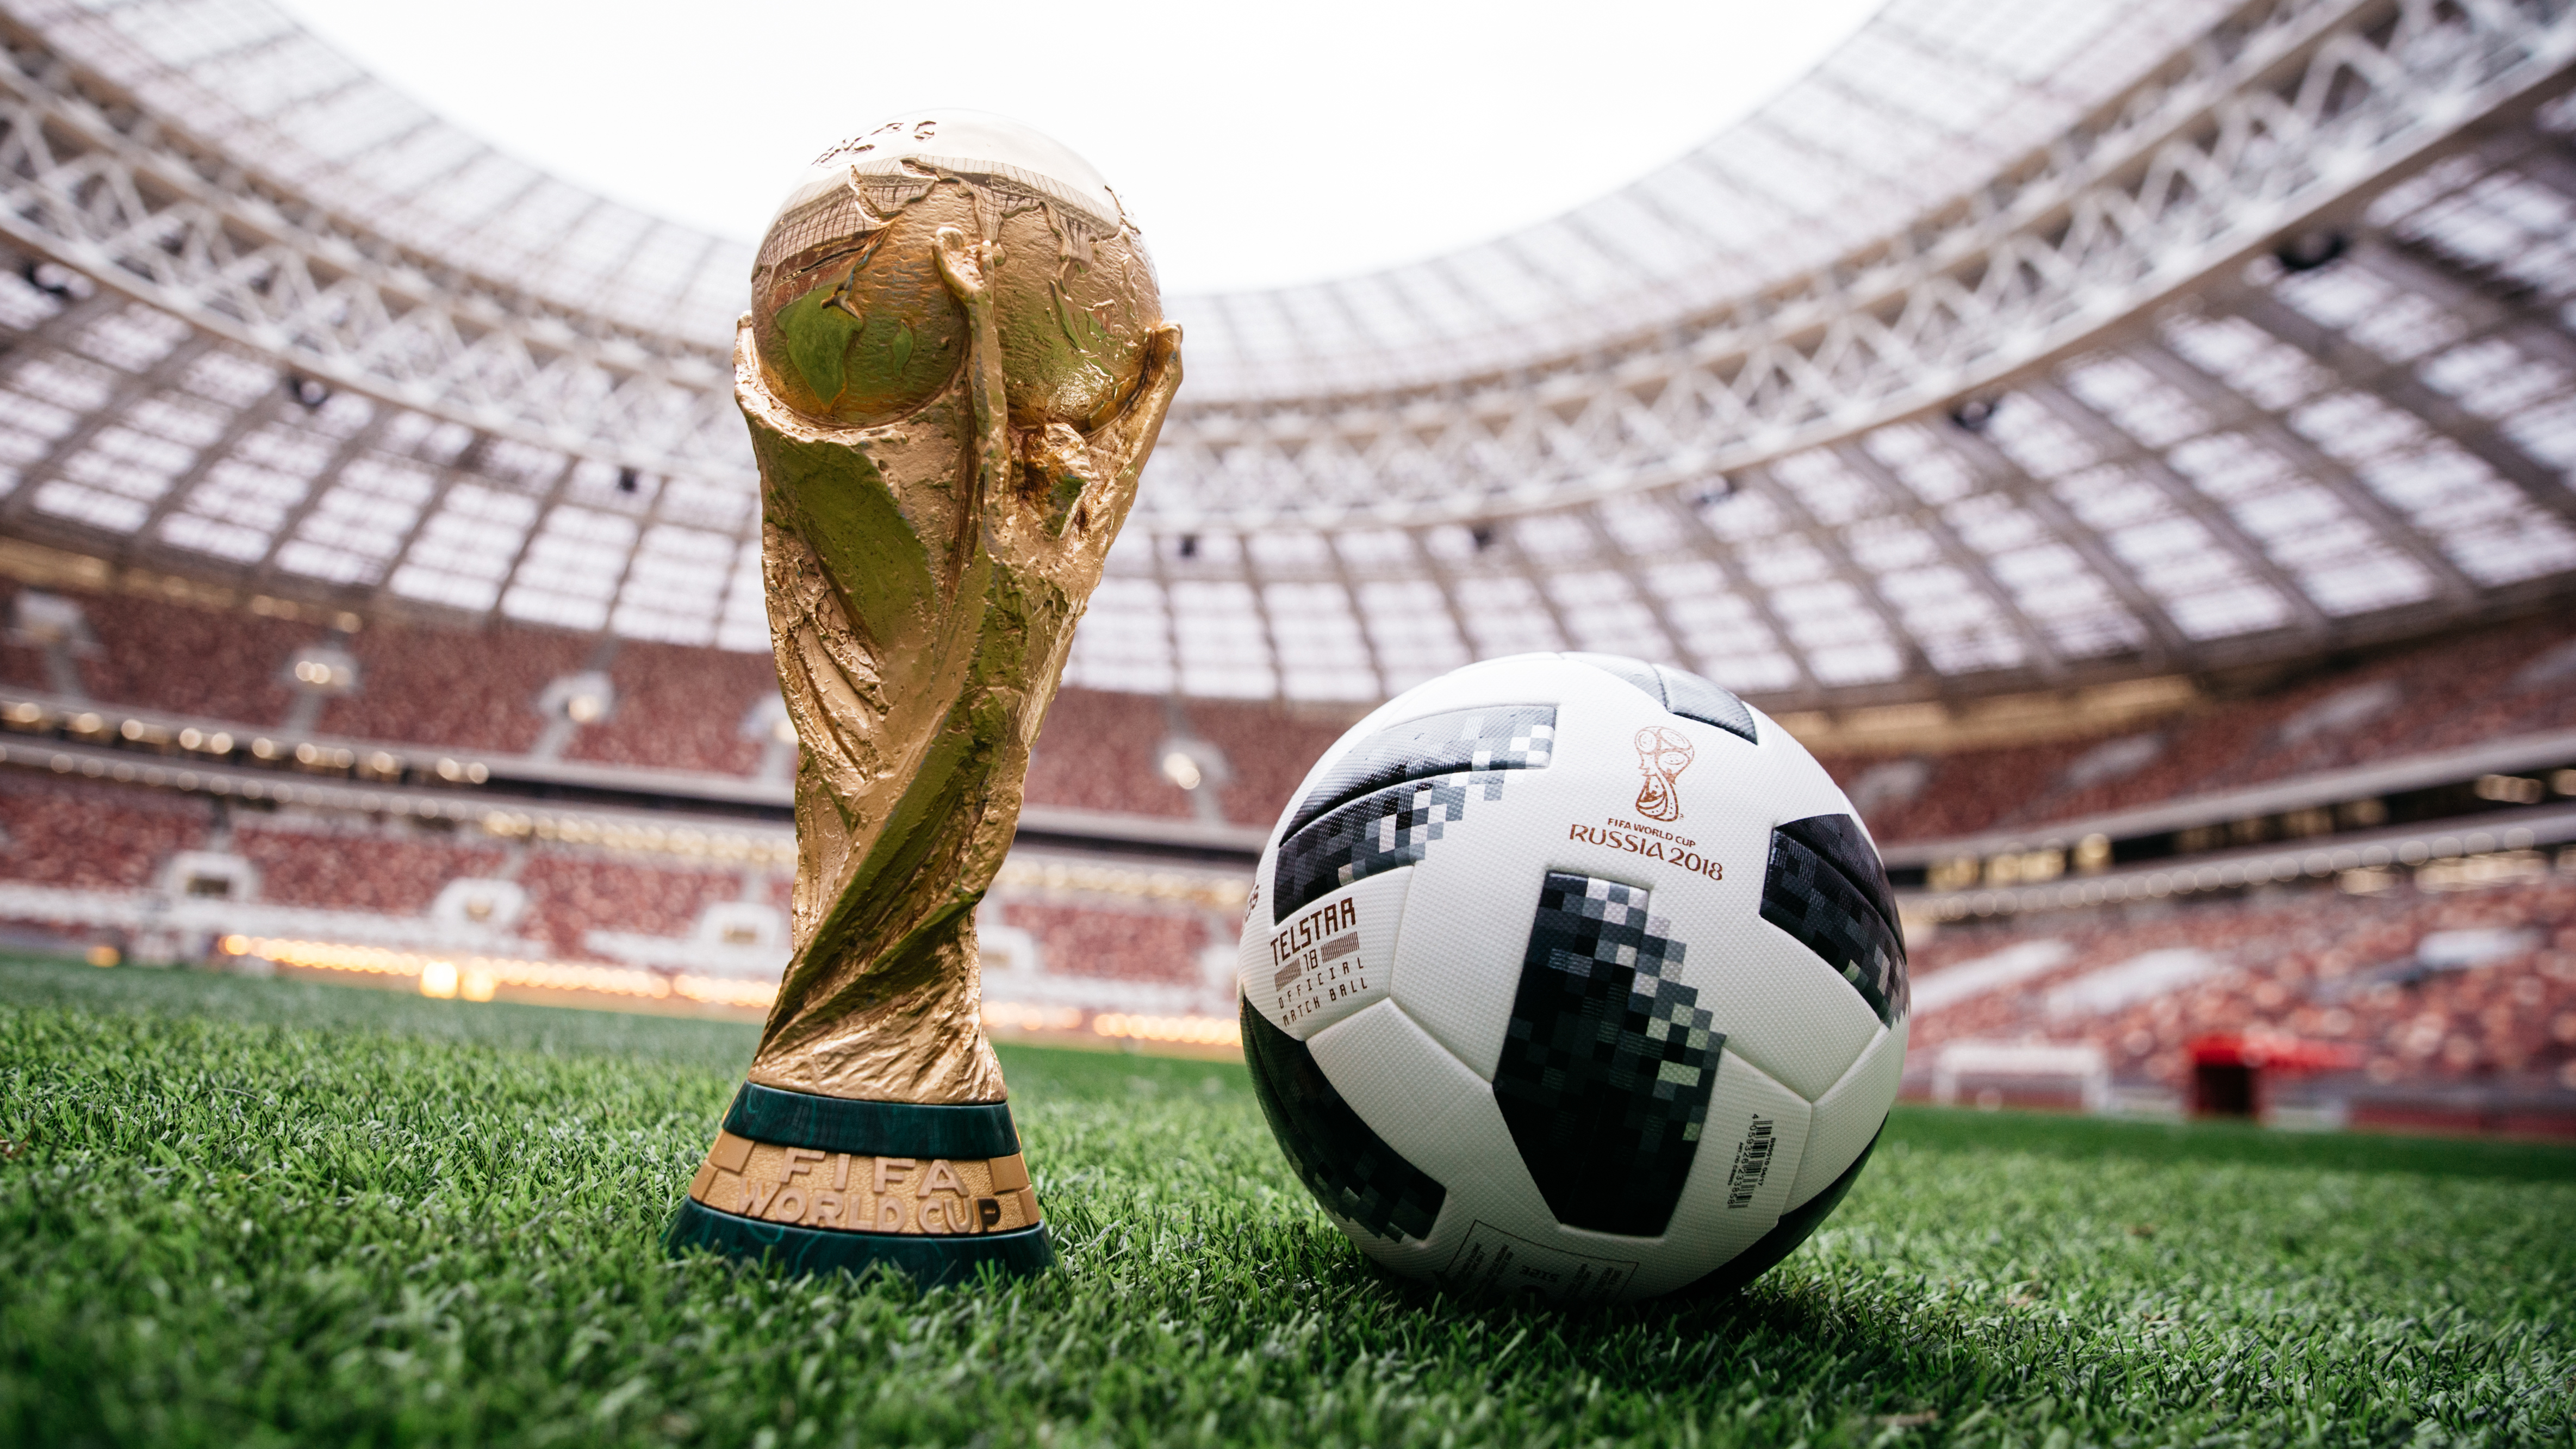 Satellites and microchips the surprising tech behind the World Cup ball